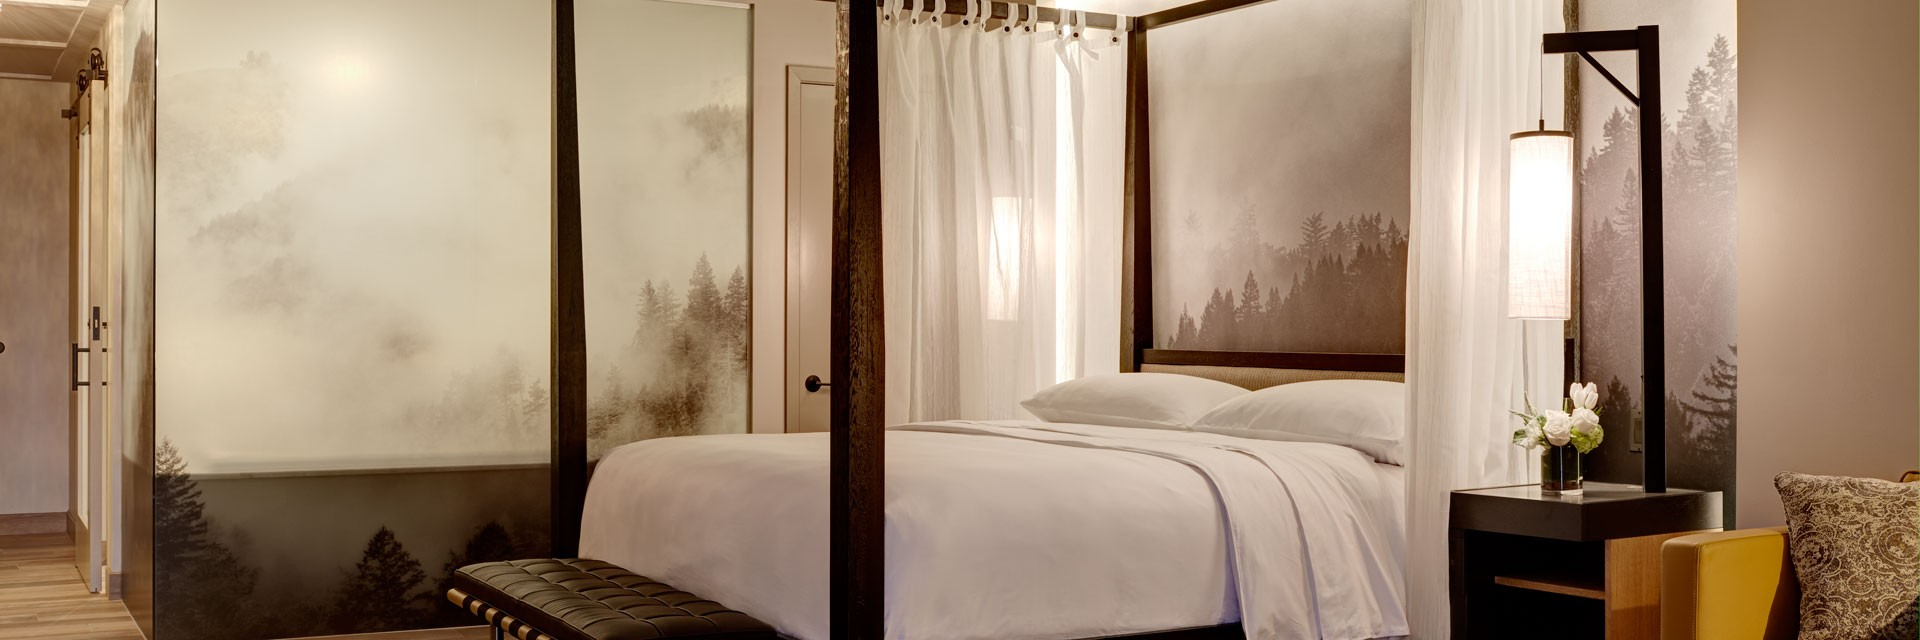 Archer Hotel Napa Four-Poster Canopy Bed